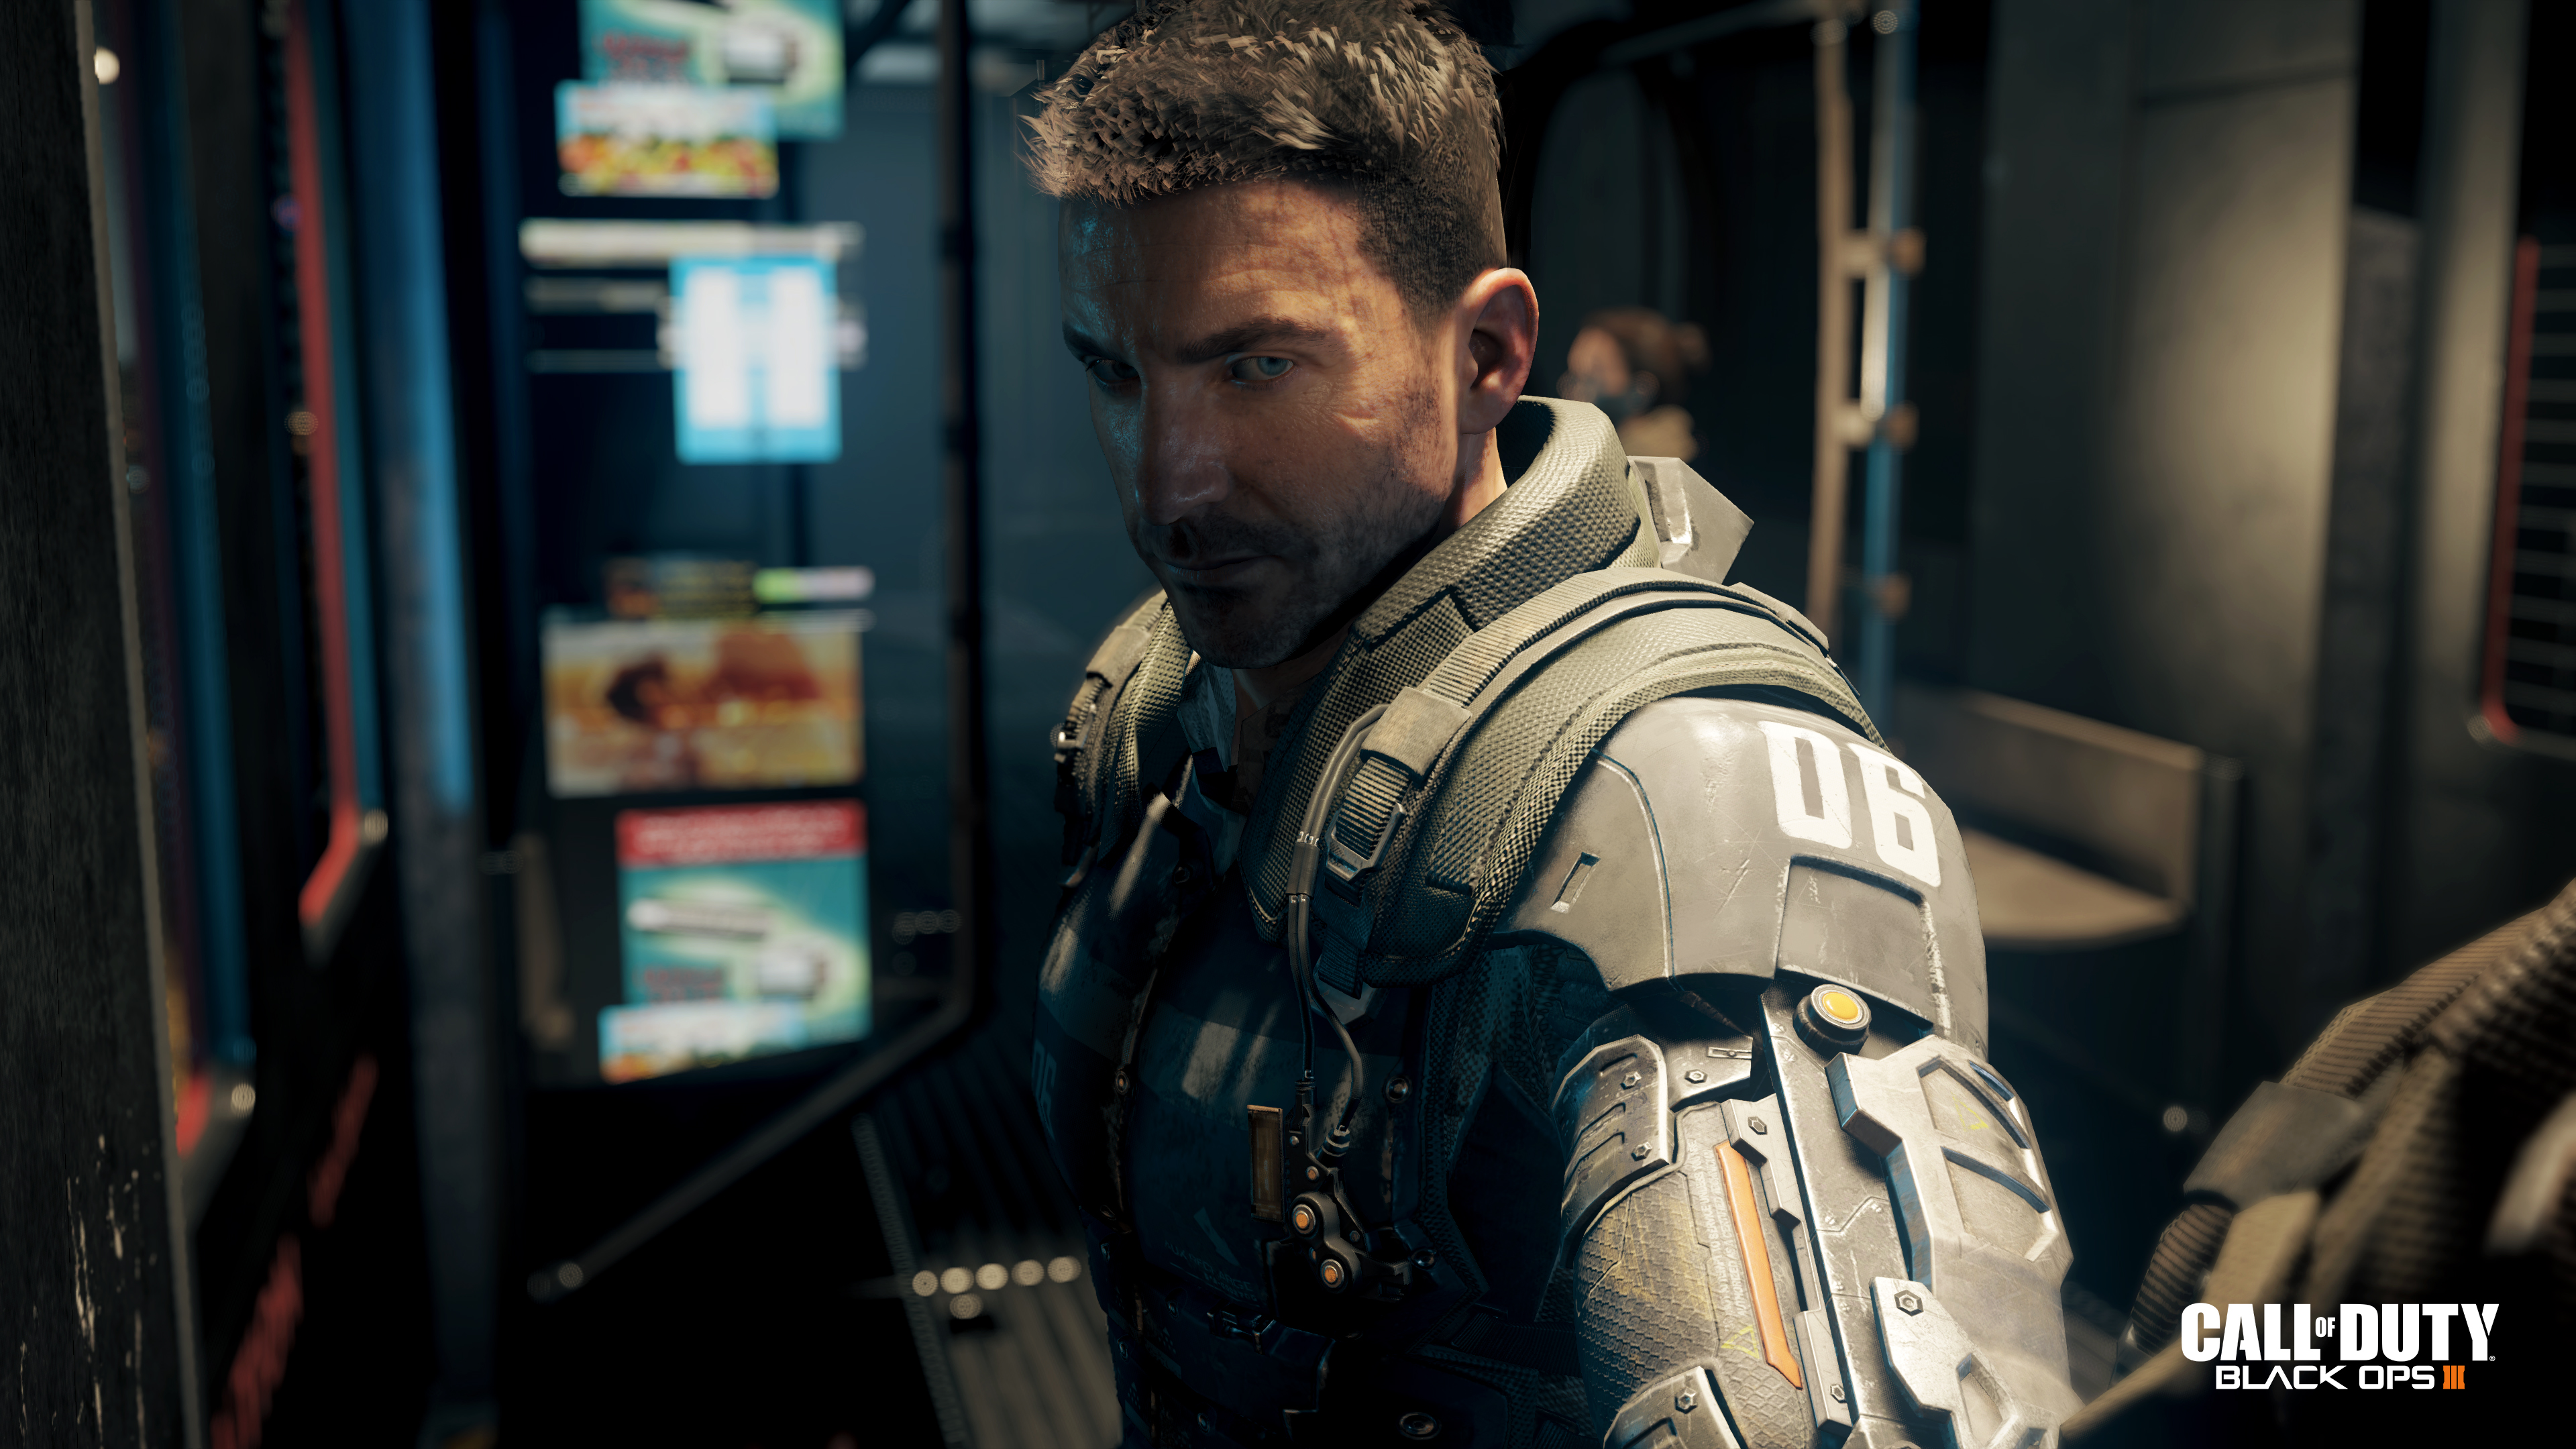 Call Of Duty A Black Ops Iii Hd Wallpapers All Hd Wallpapers